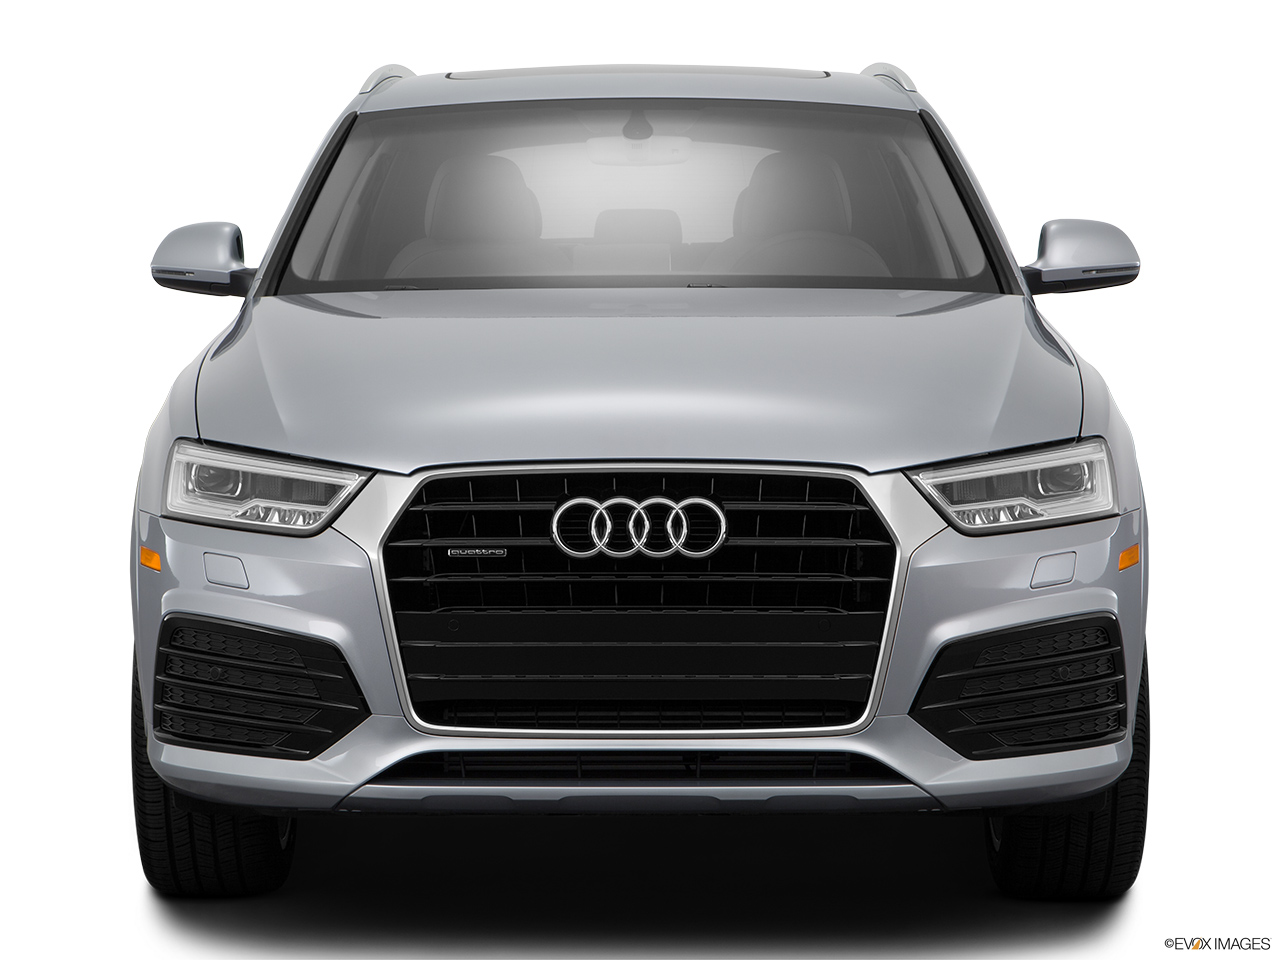 audi q3 2017 35 tfsi design quattro 180 hp in egypt new car prices specs reviews photos. Black Bedroom Furniture Sets. Home Design Ideas